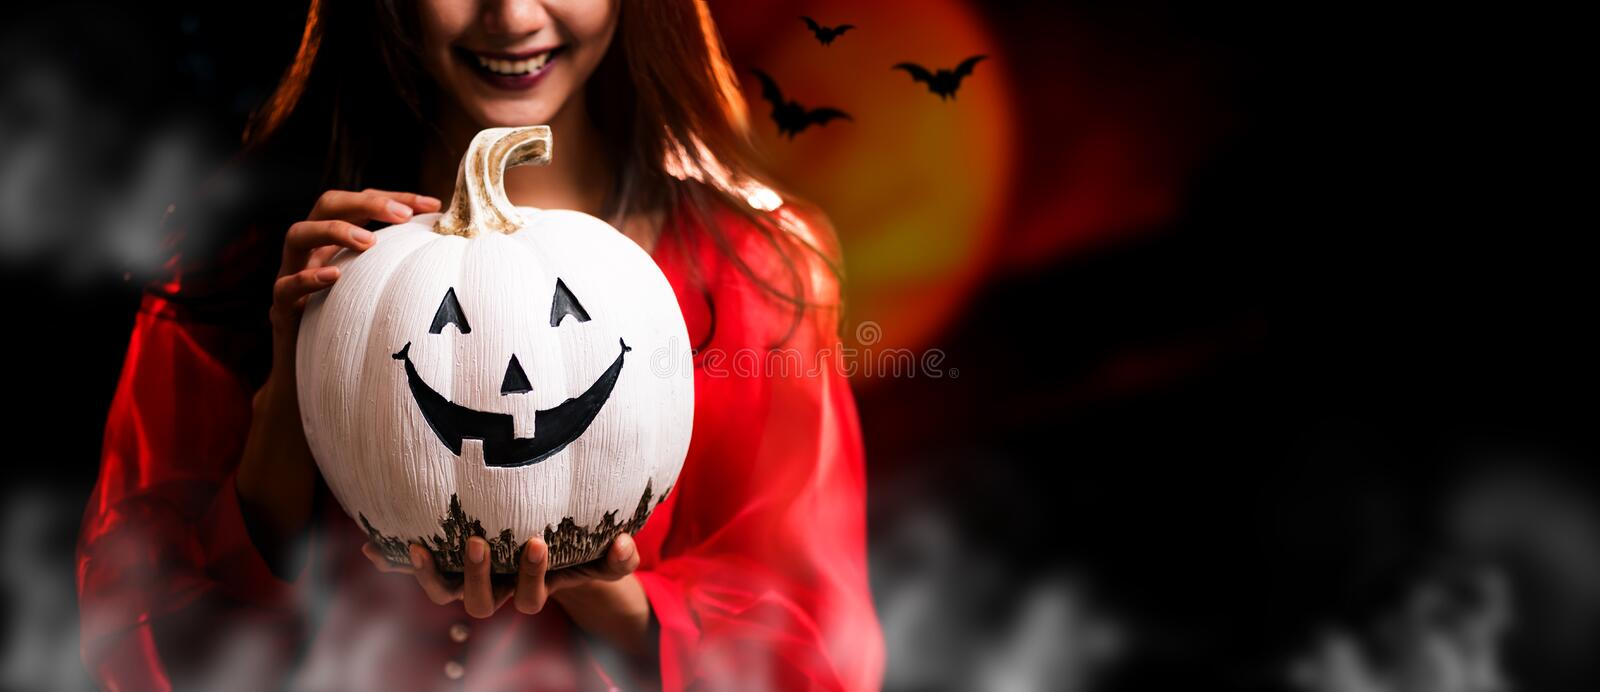 Happy Halloween. Beautiful woman costume and holding pumpkin. Copy space on dark background stock images